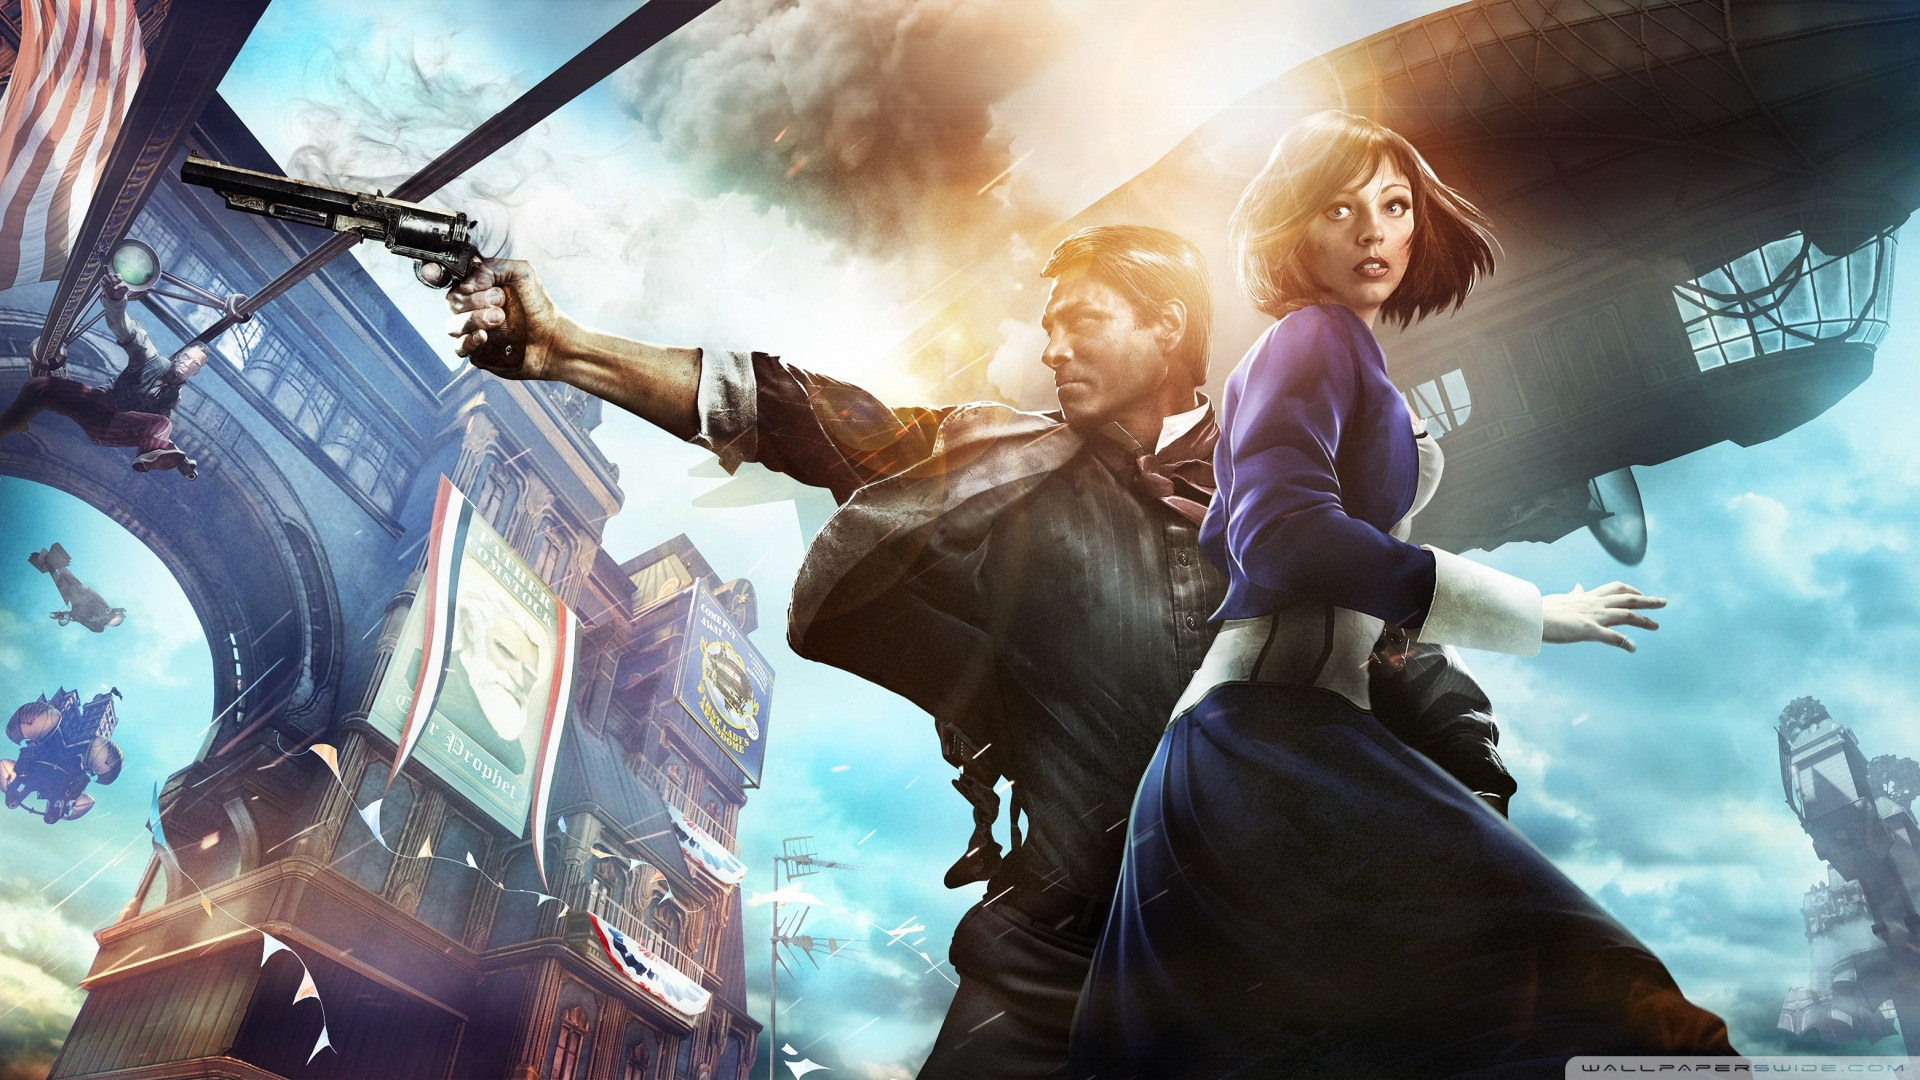 bioshock_infinite_3-wallpaper-1920x1080+1_20130130160004.jpg